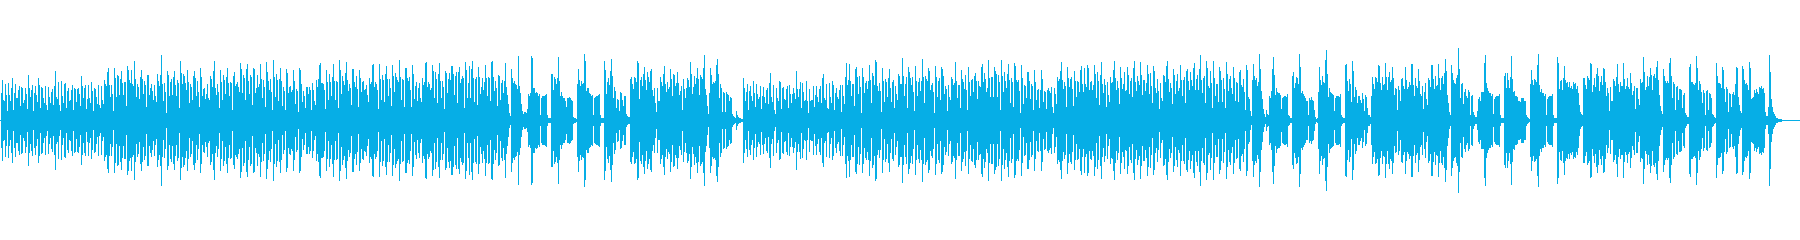 It is a tune with a pretty upset tempo's reproduced waveform